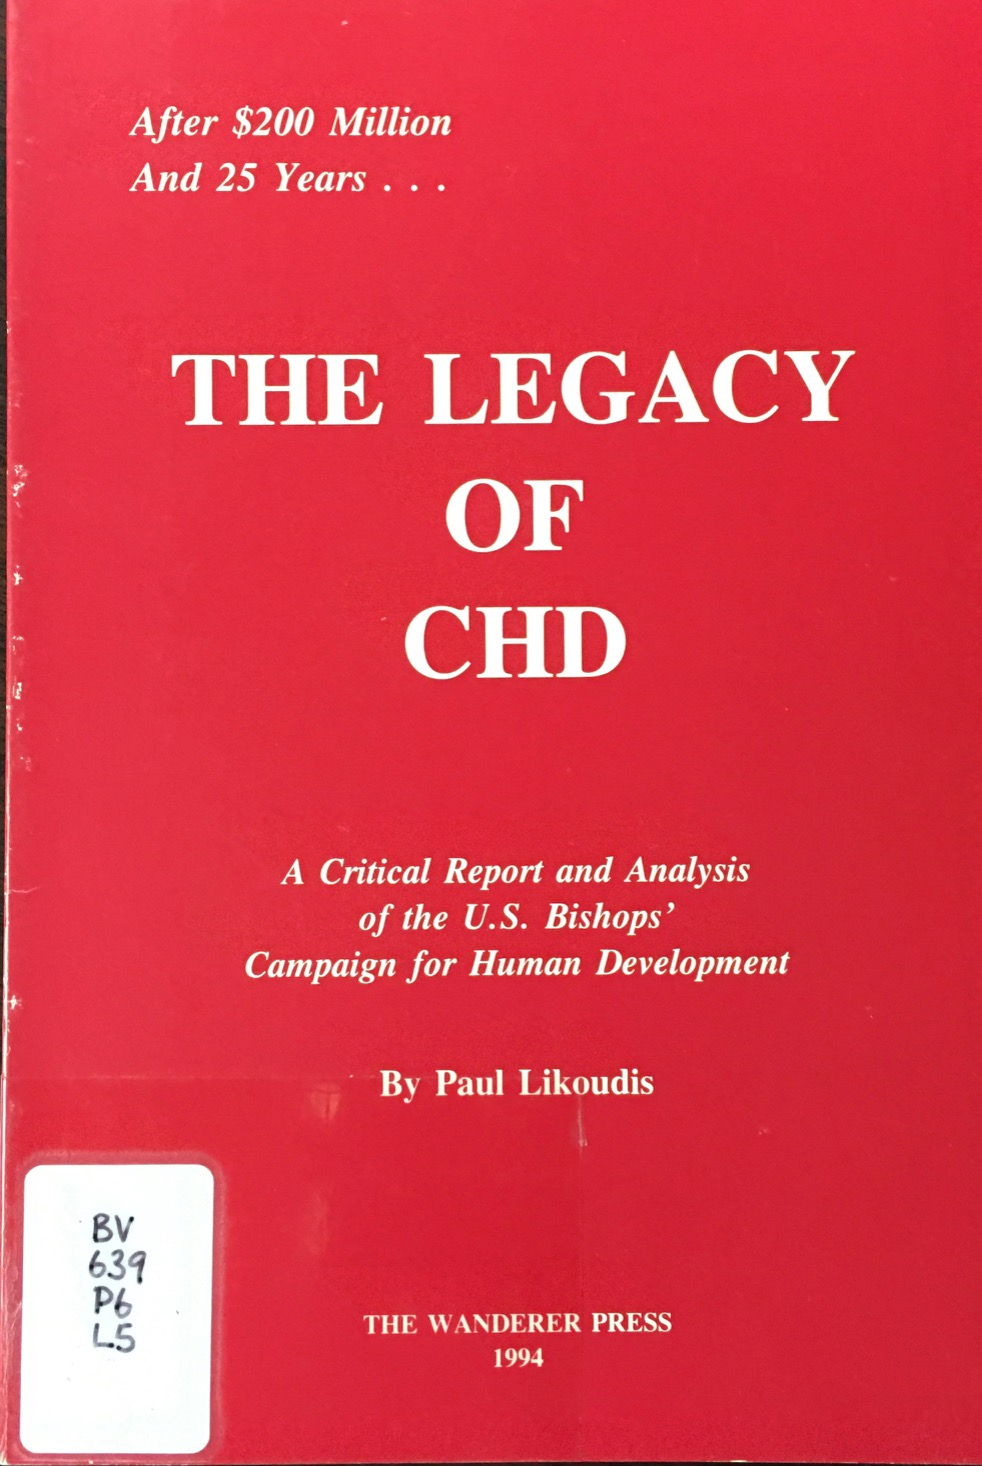 Image for The Legacy of CHD: A critical report and analysis of the U.S. Bishops' Campaign for Human Development